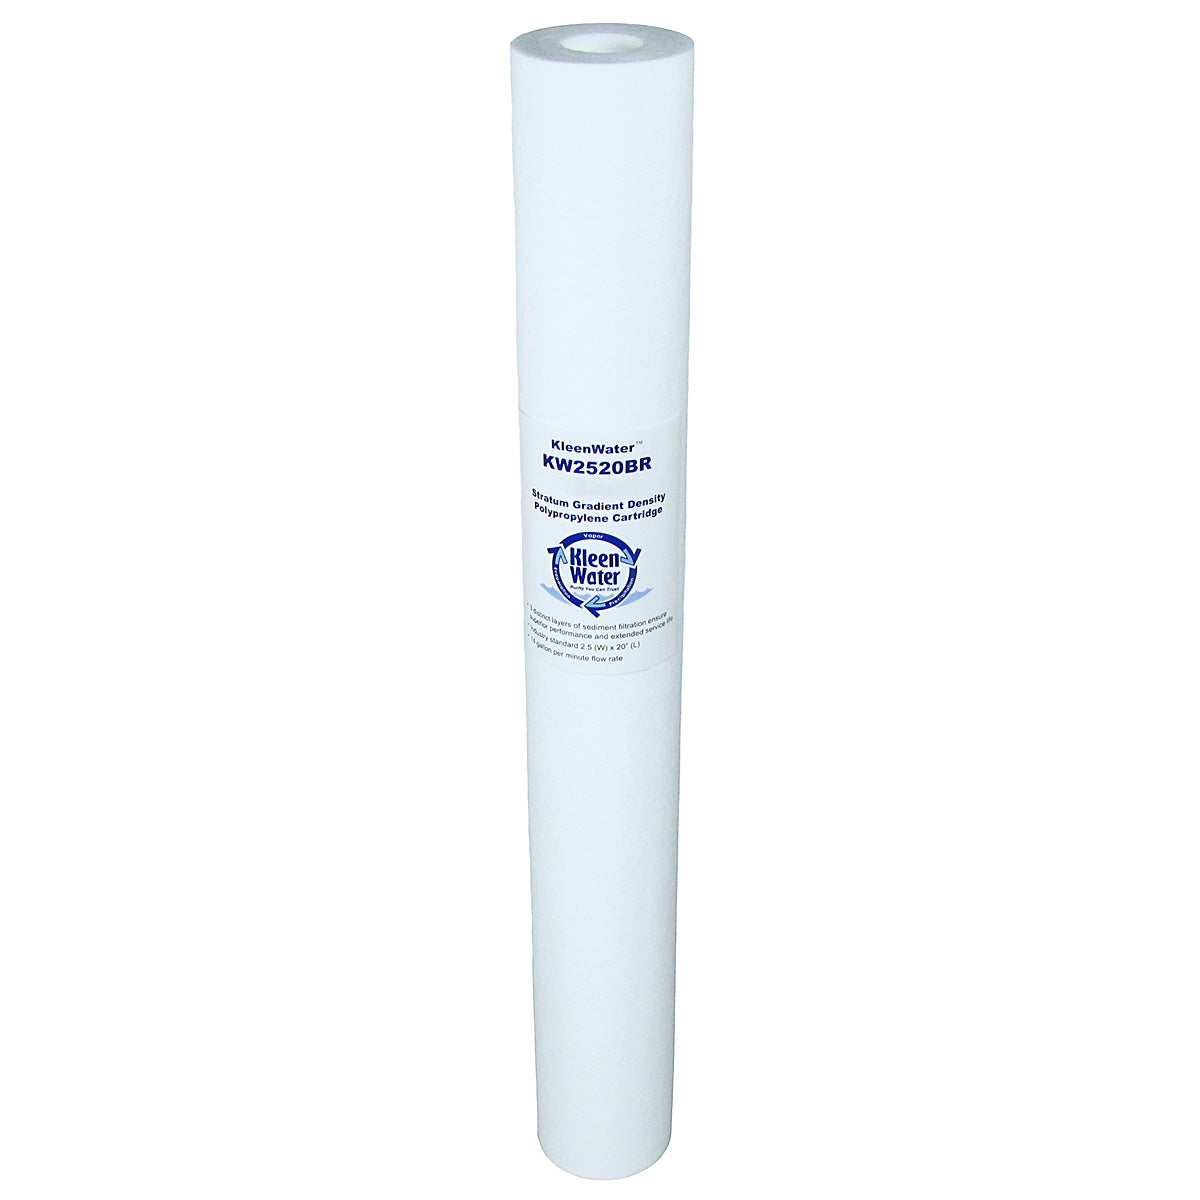 Dirt Rust Sediment Whole House Water Filter Cartridge 2.5 x 20 Inch - Kleenwater